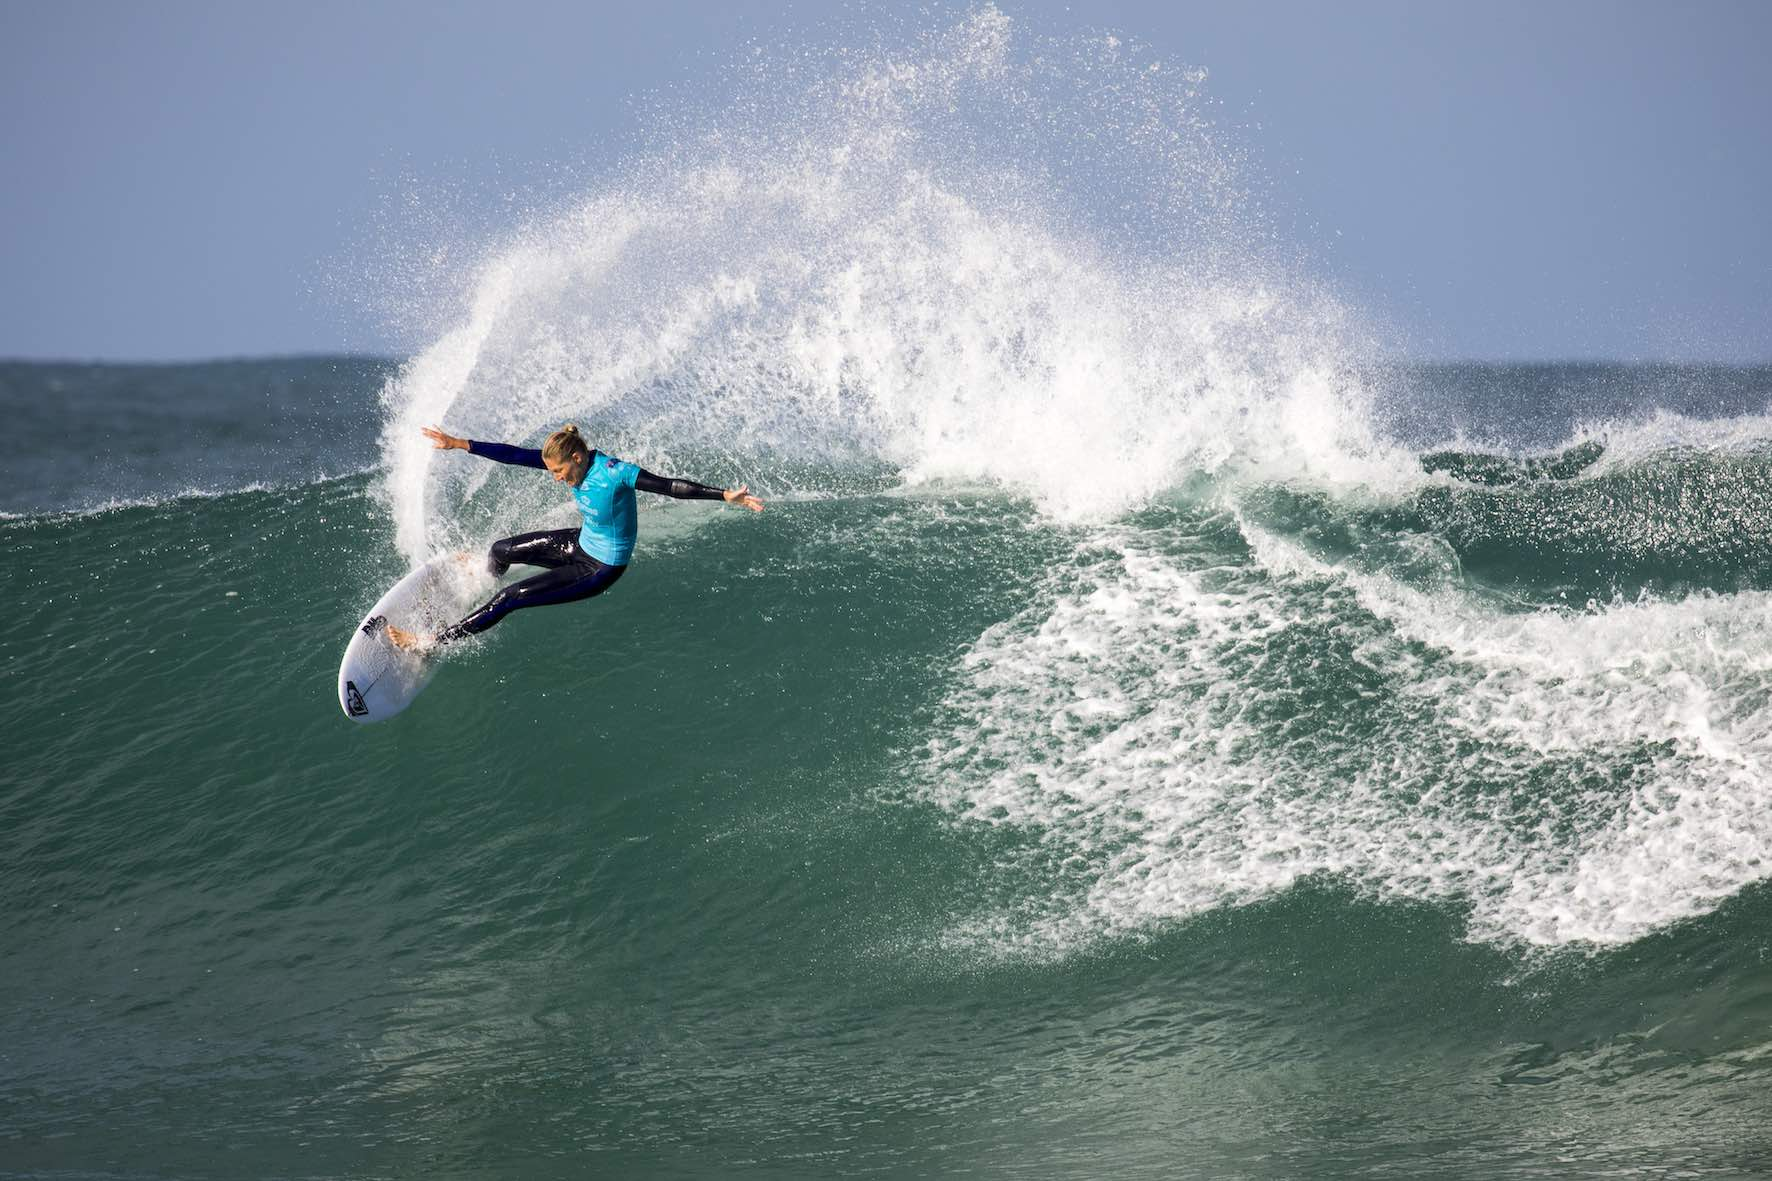 Stephanie Gilmore surfing her way to victory at the 2018 Corona Open J-Bay